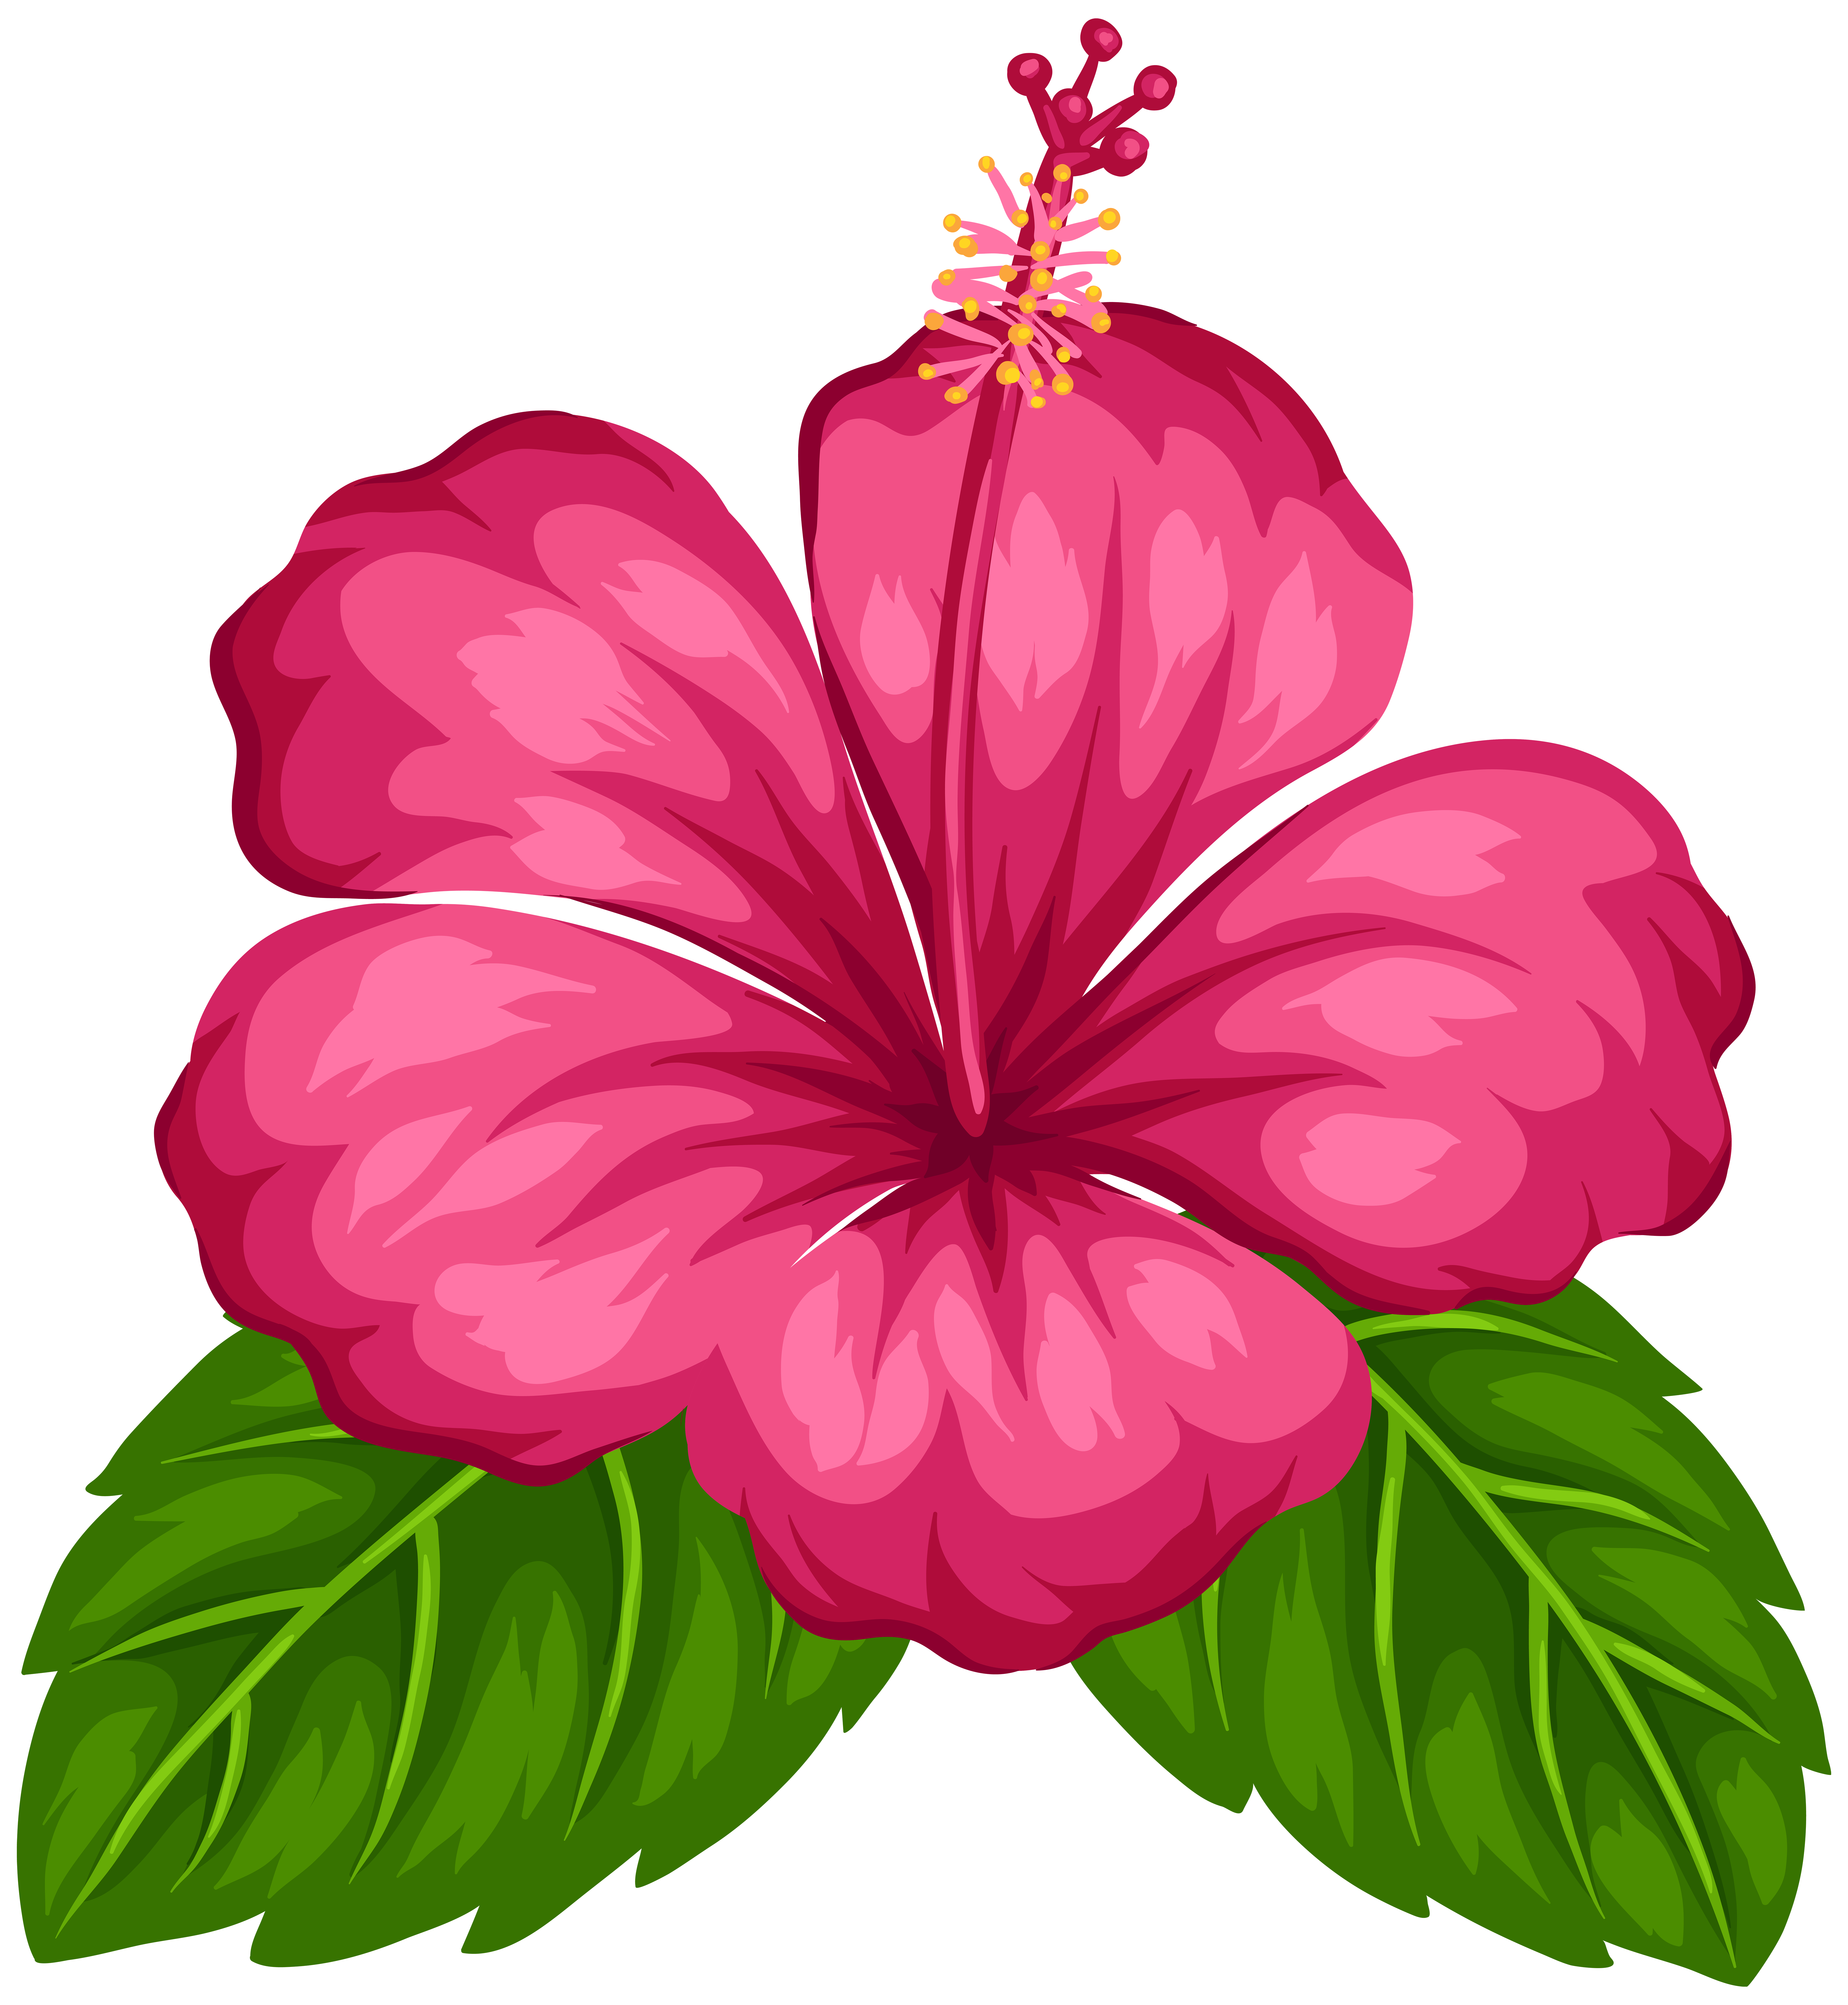 free moana clipart at getdrawings com free for personal kitchen clip art images kitchen clip art images